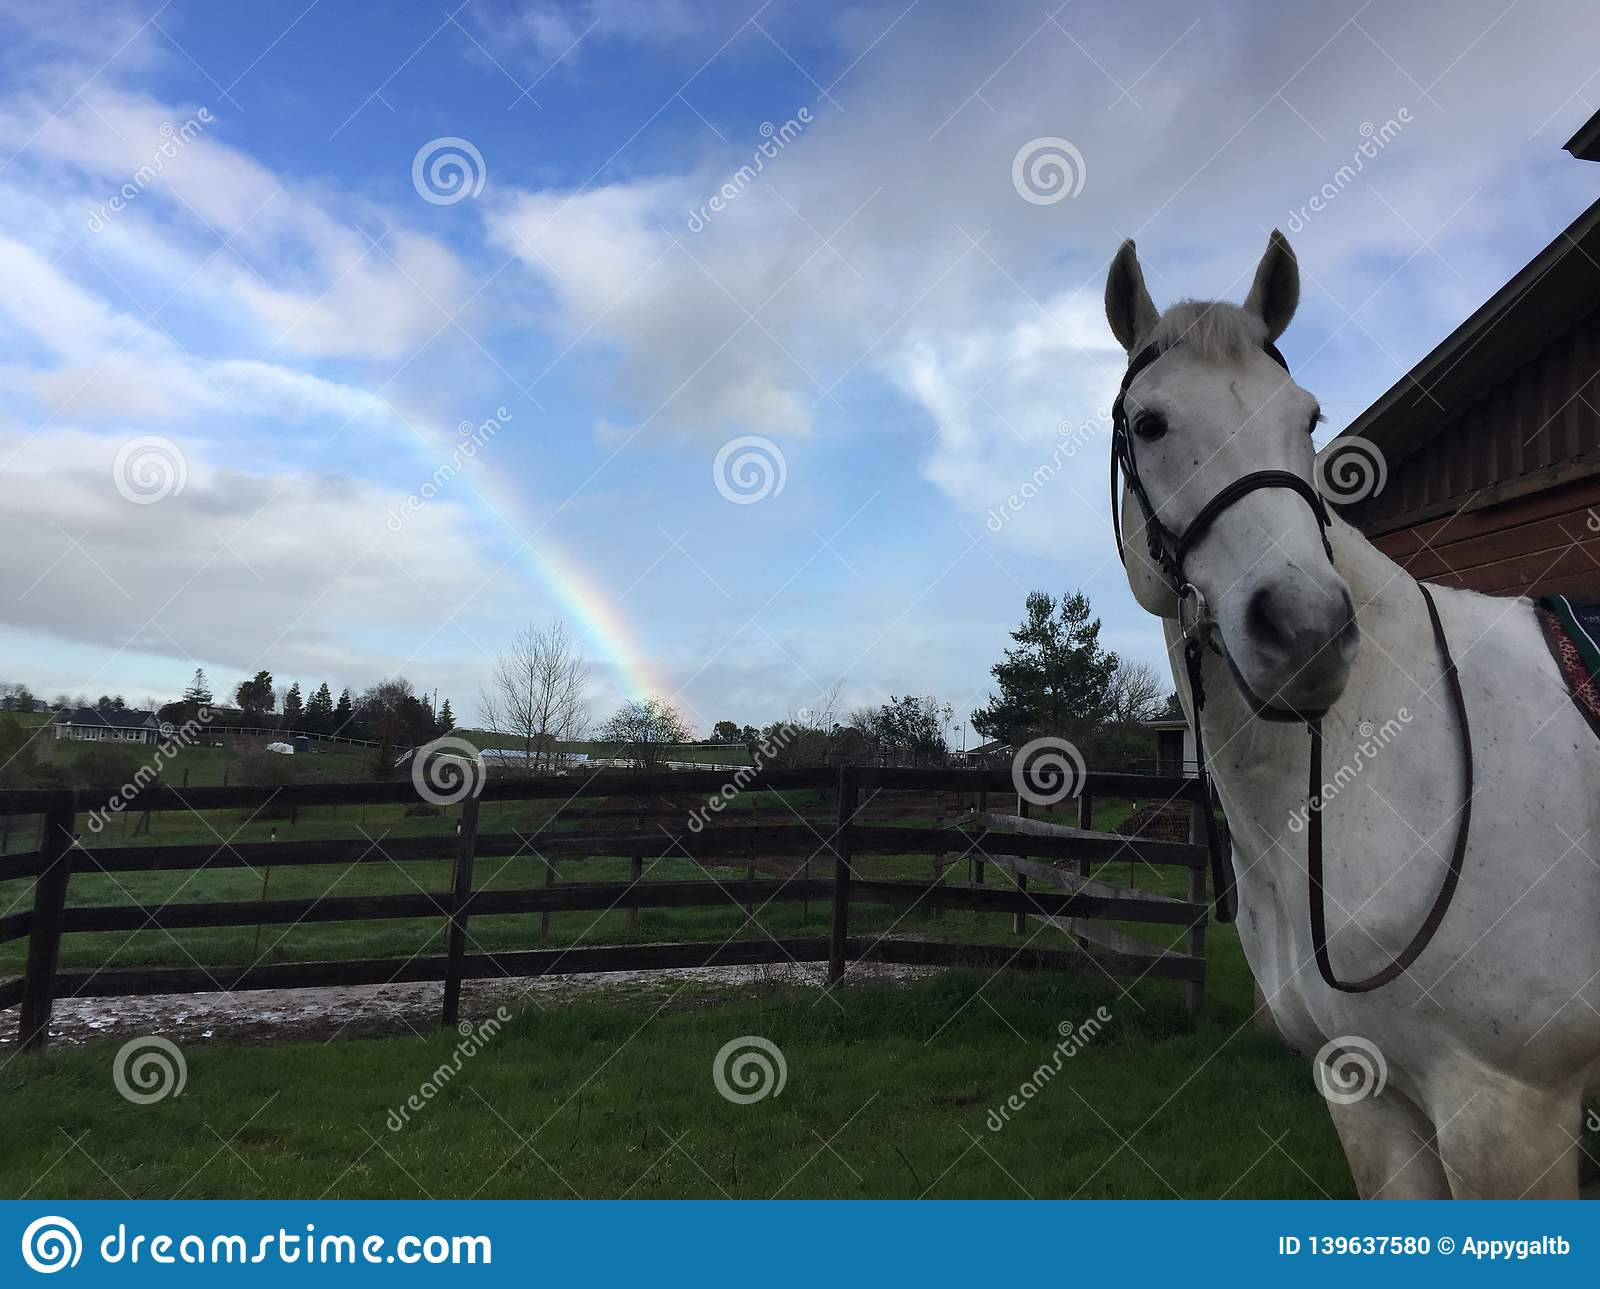 Rainbow, gray horse wearing bridle and barn with green grass